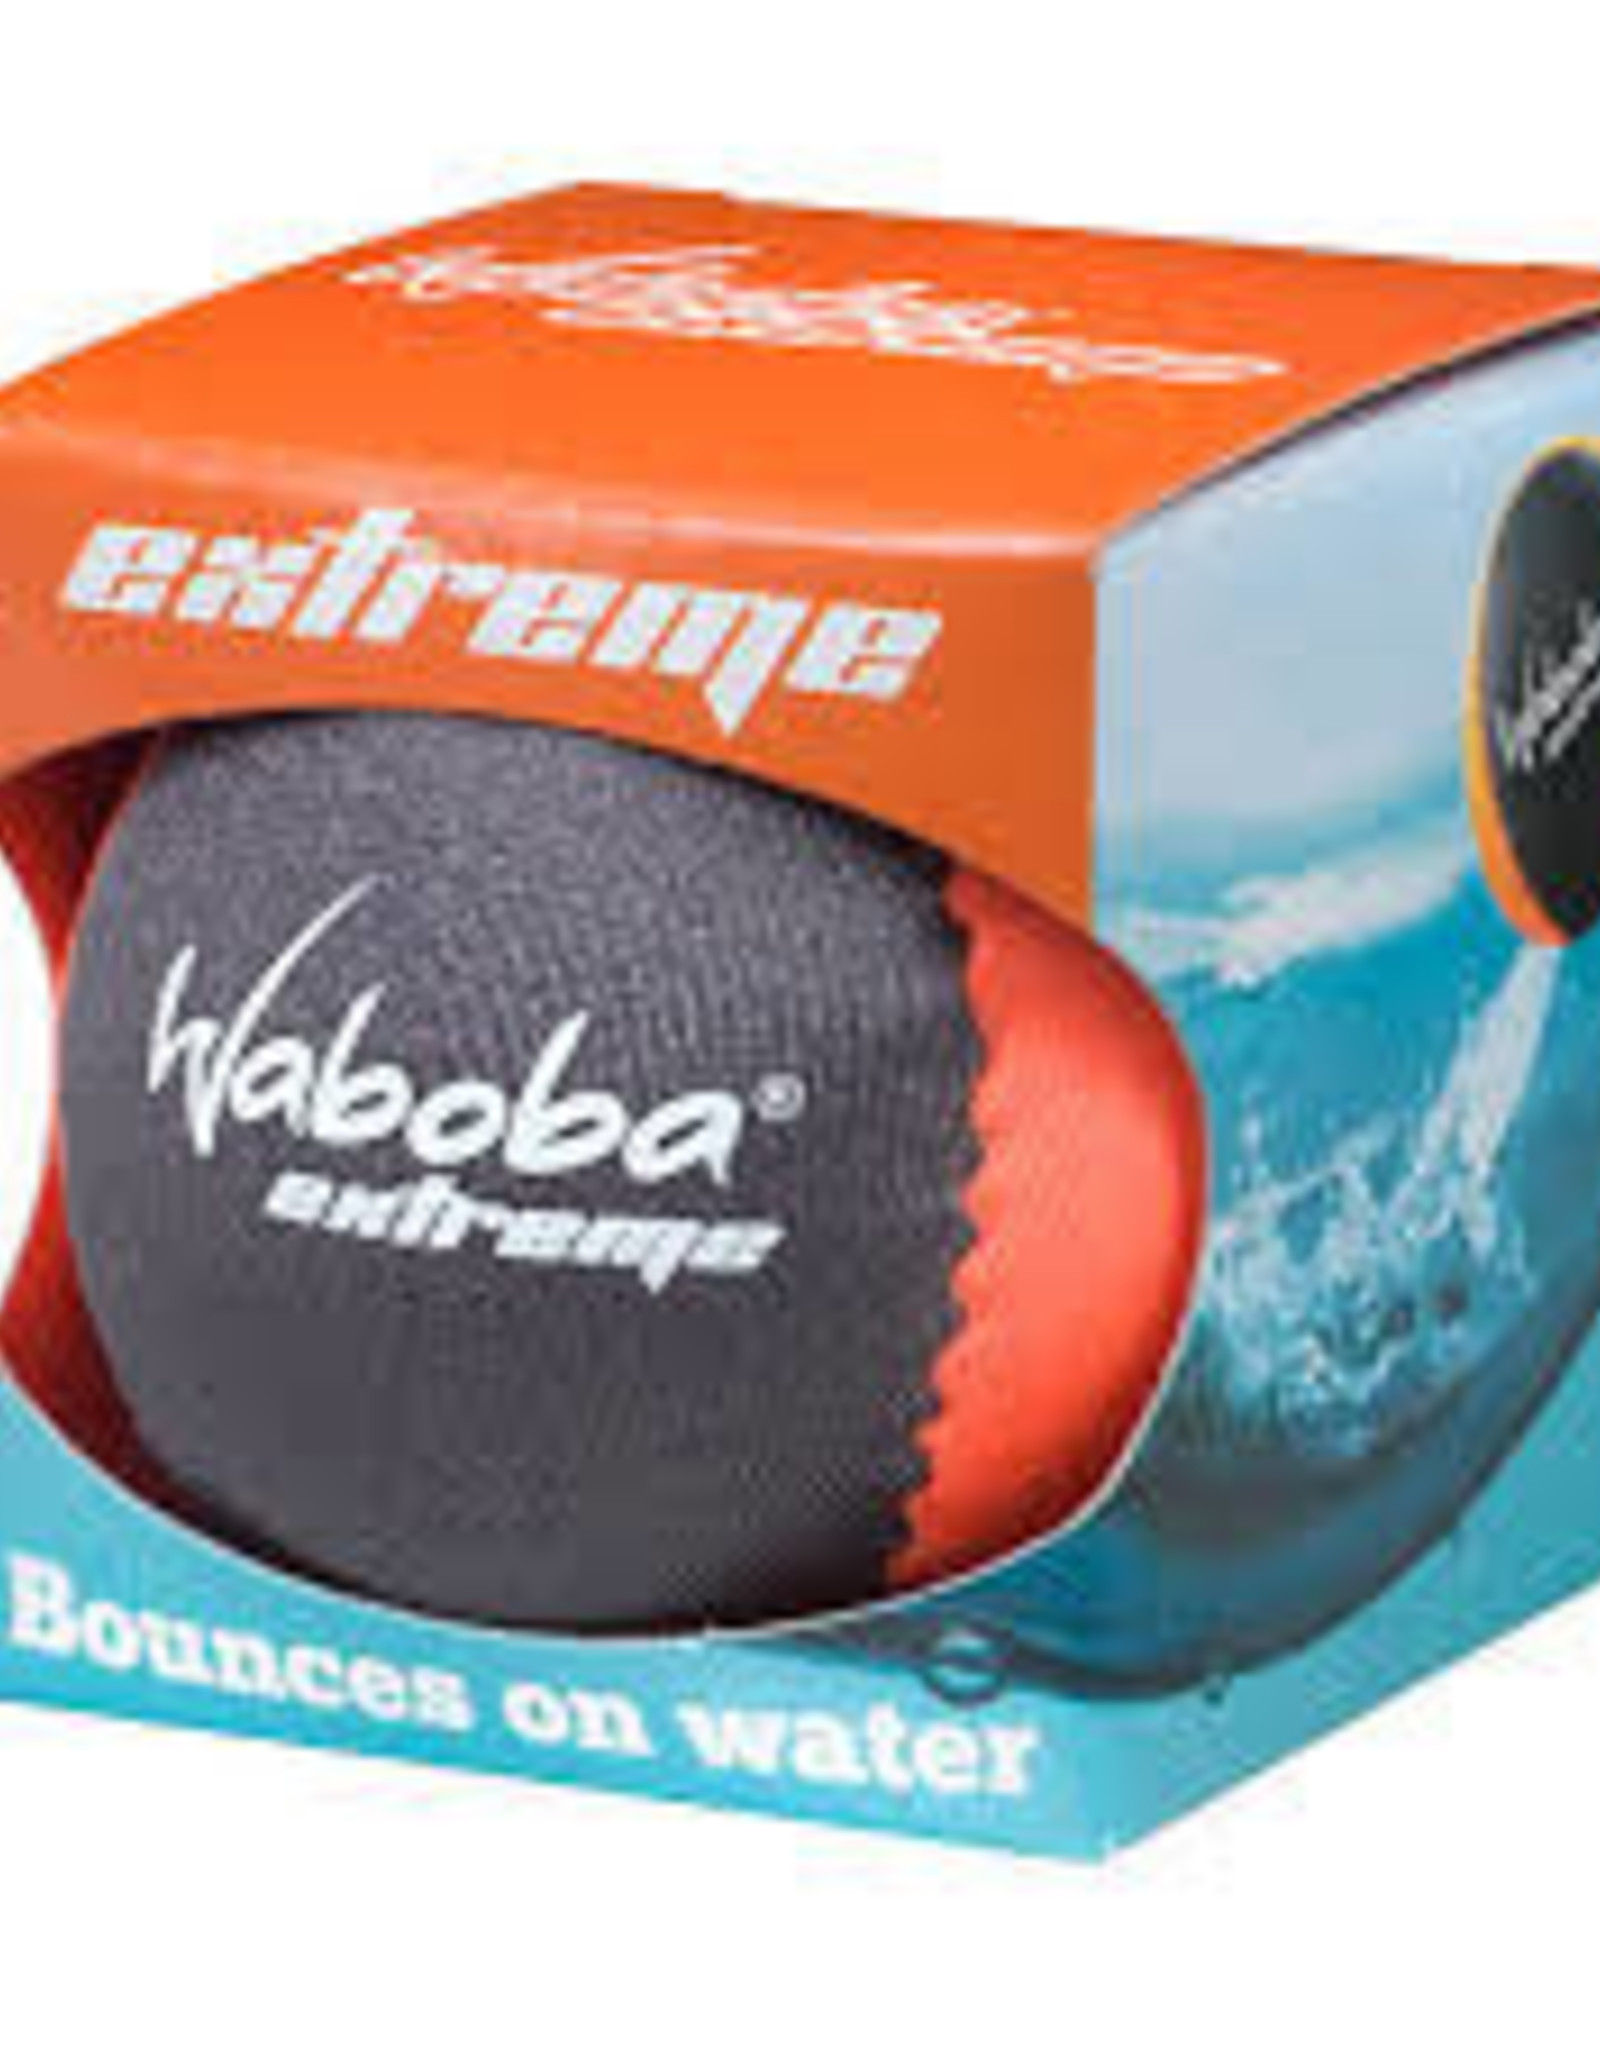 Waboba Extreme Ball - Boxed